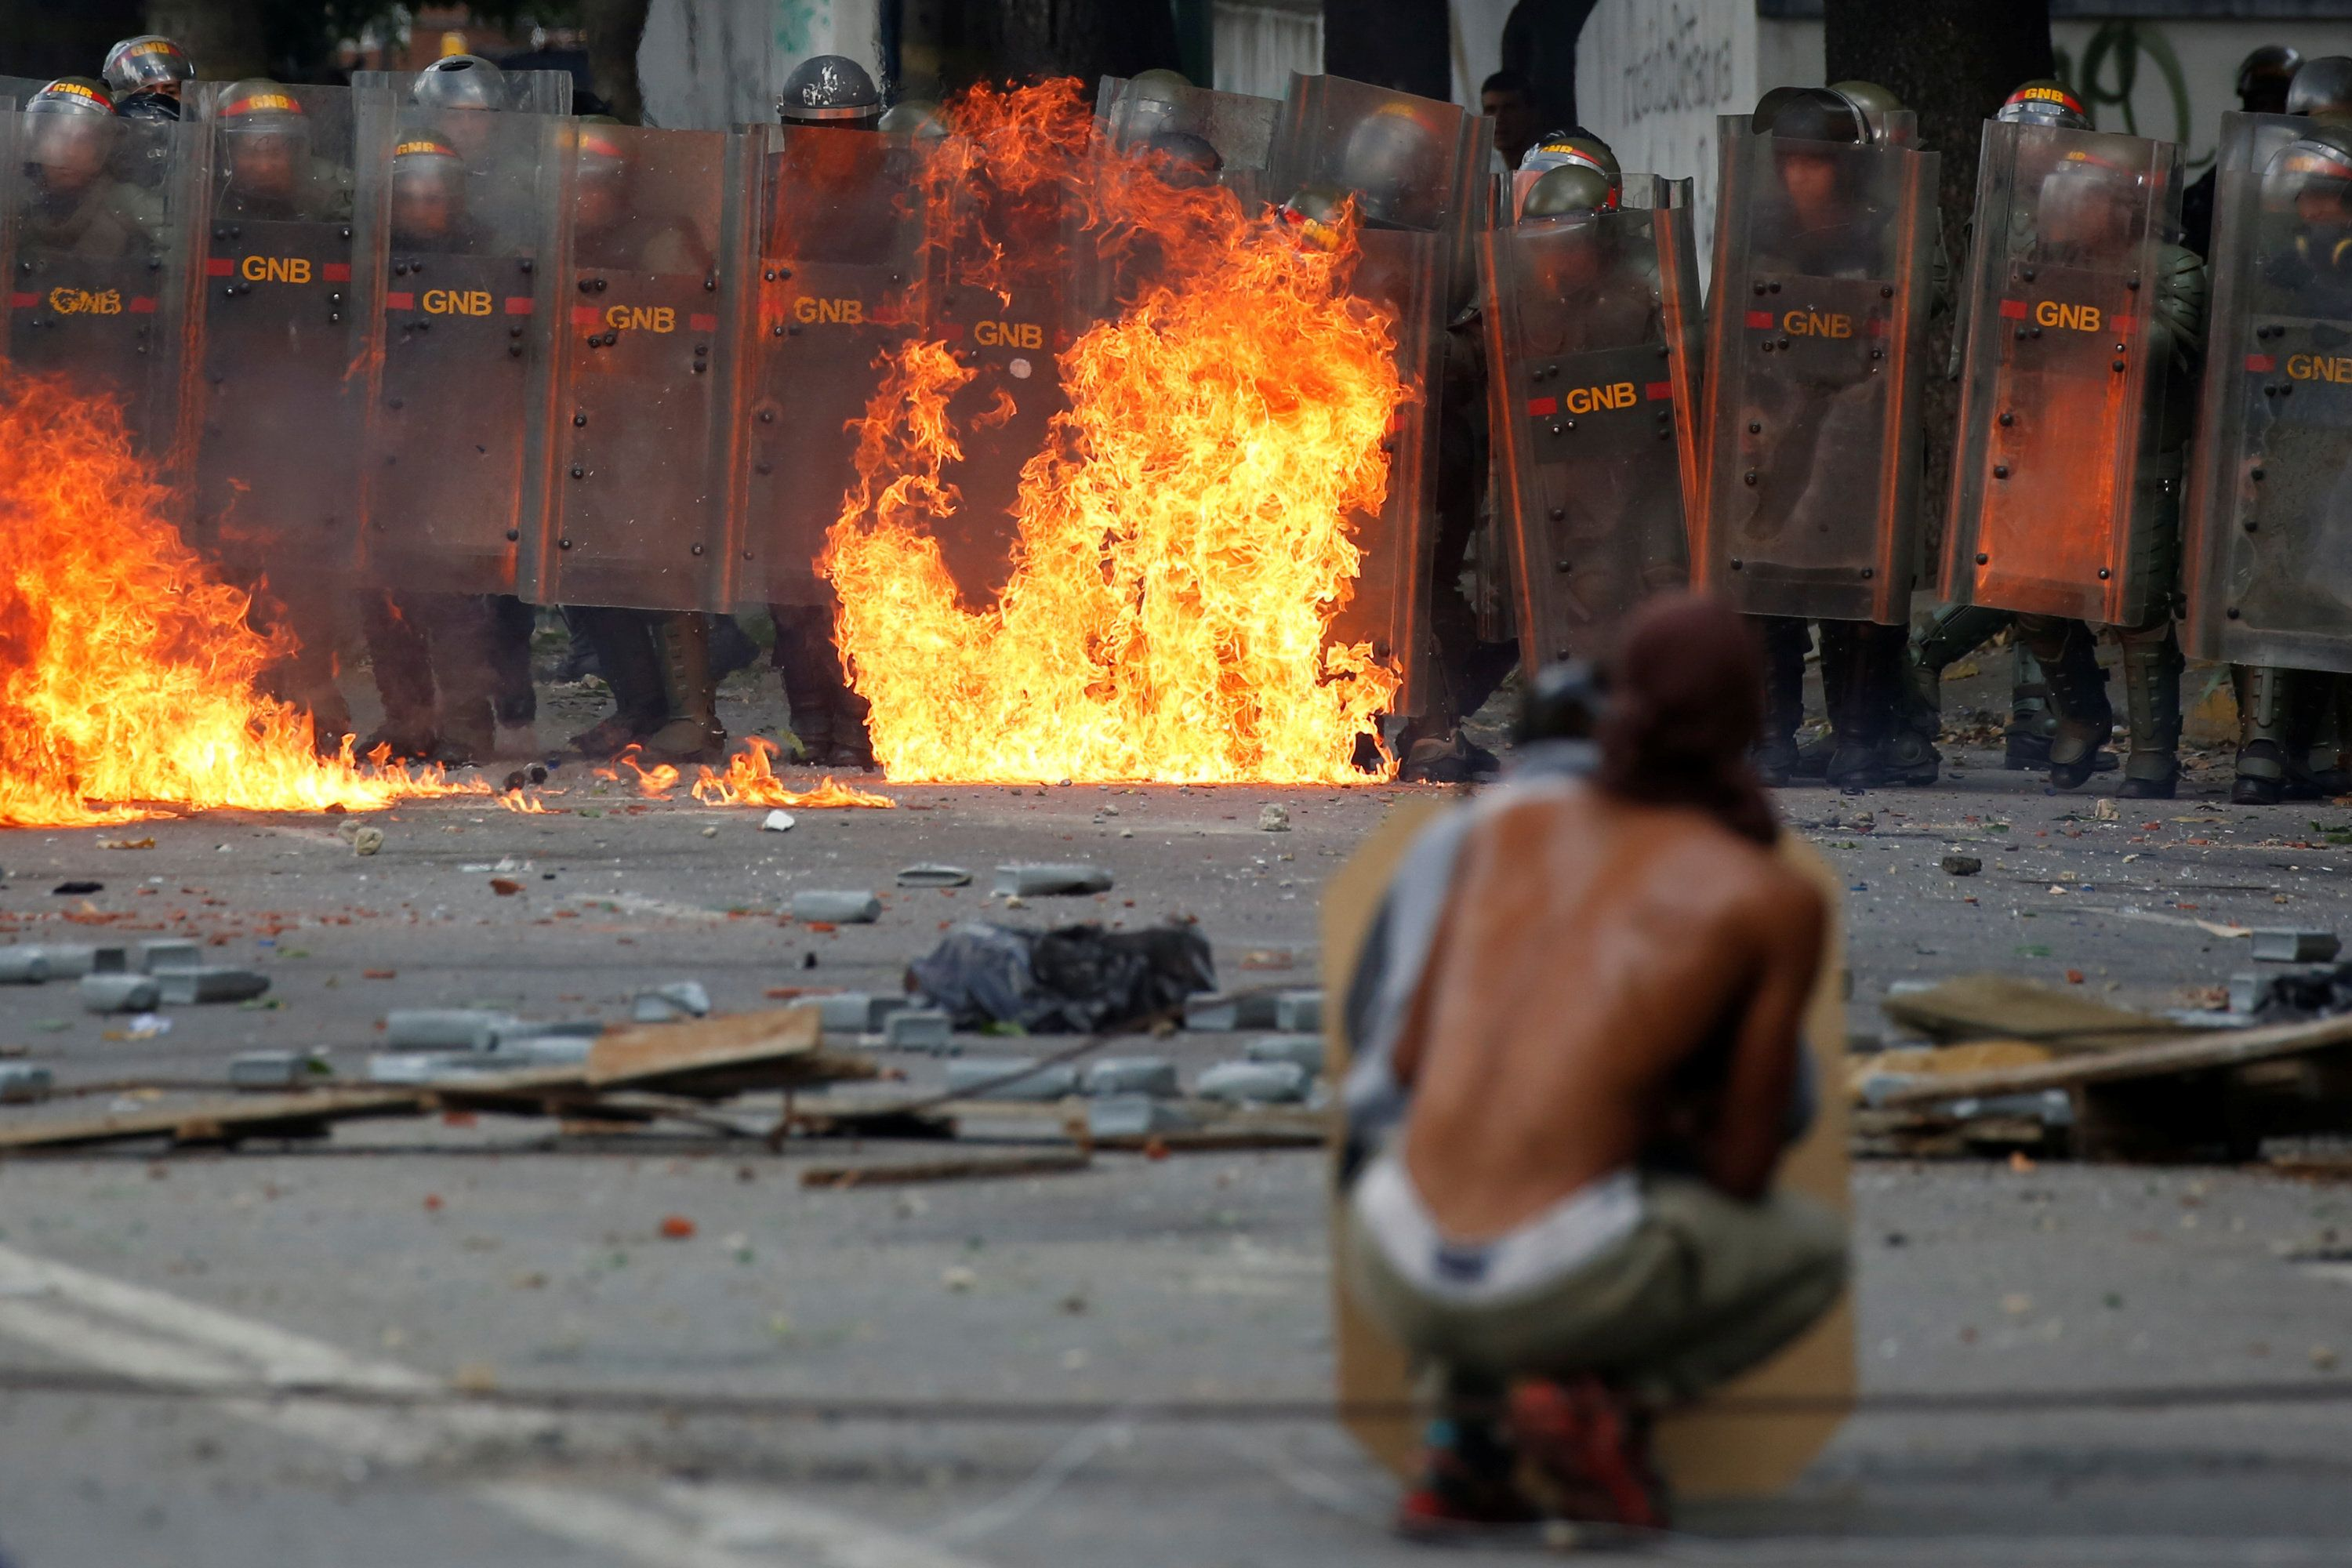 Chaos In Venezuela As Bloodshed Continues In Deadly Strikes Against Ruling